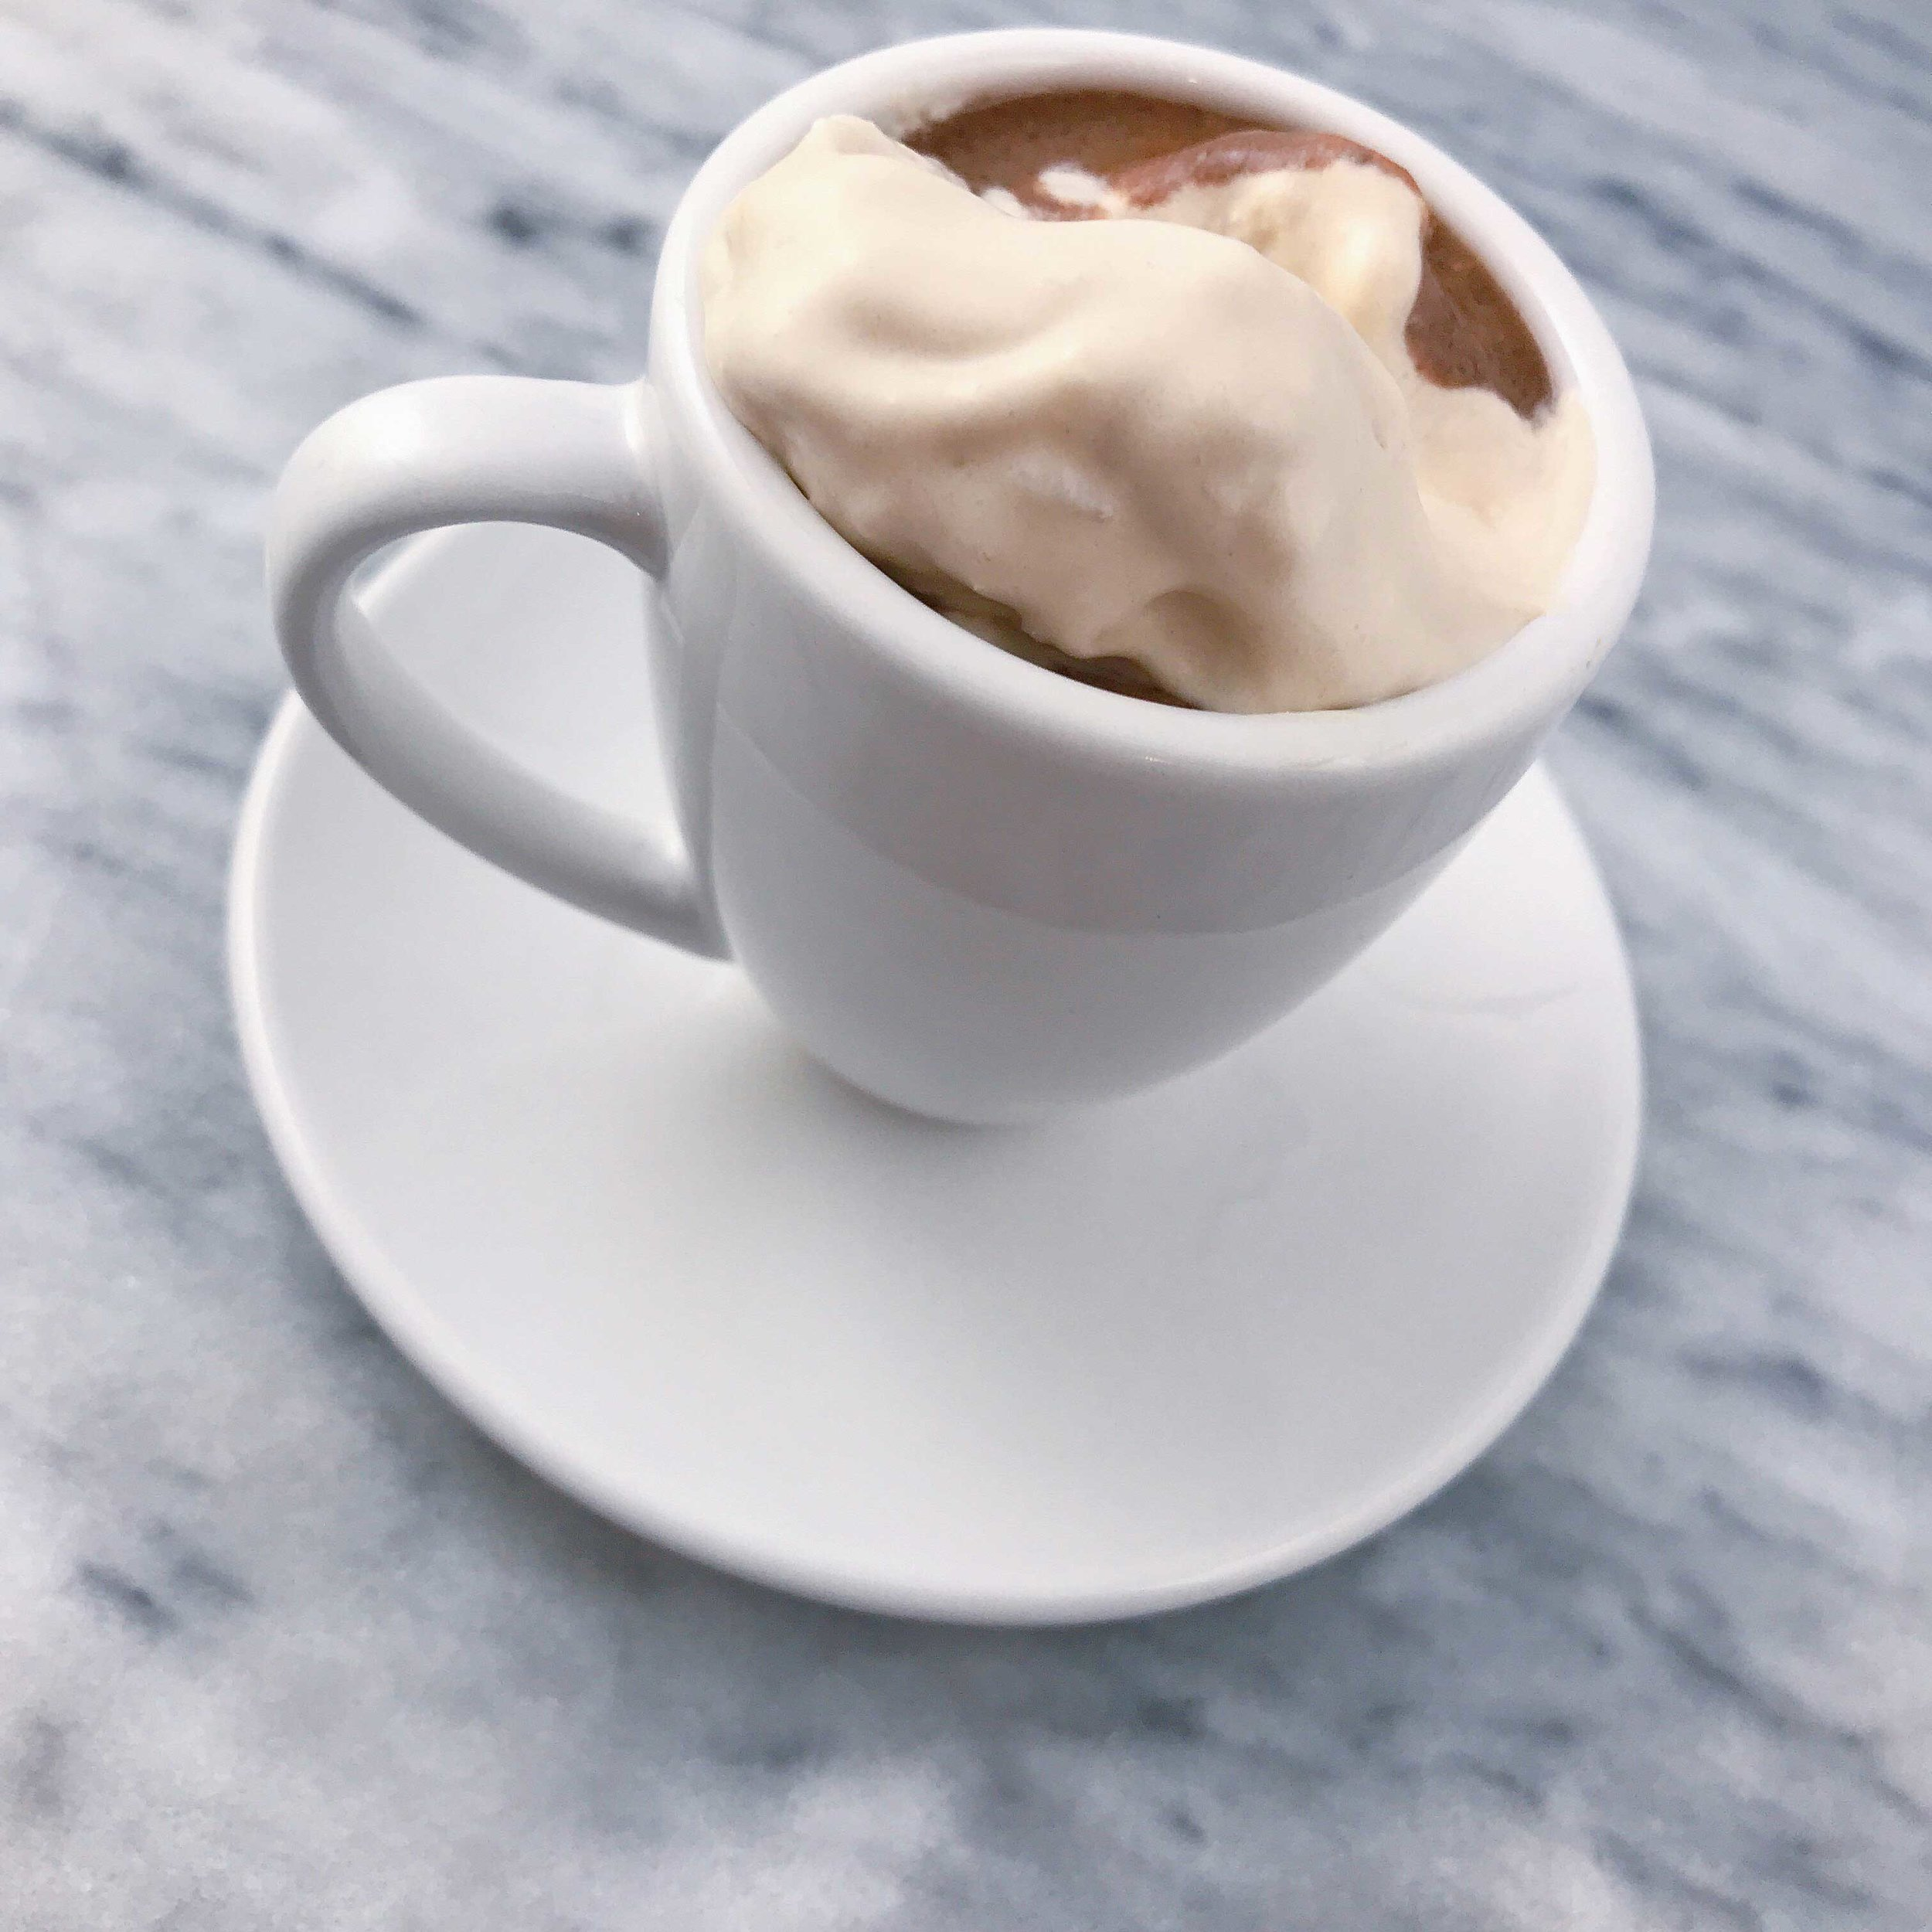 toddler-sized hot chocolate